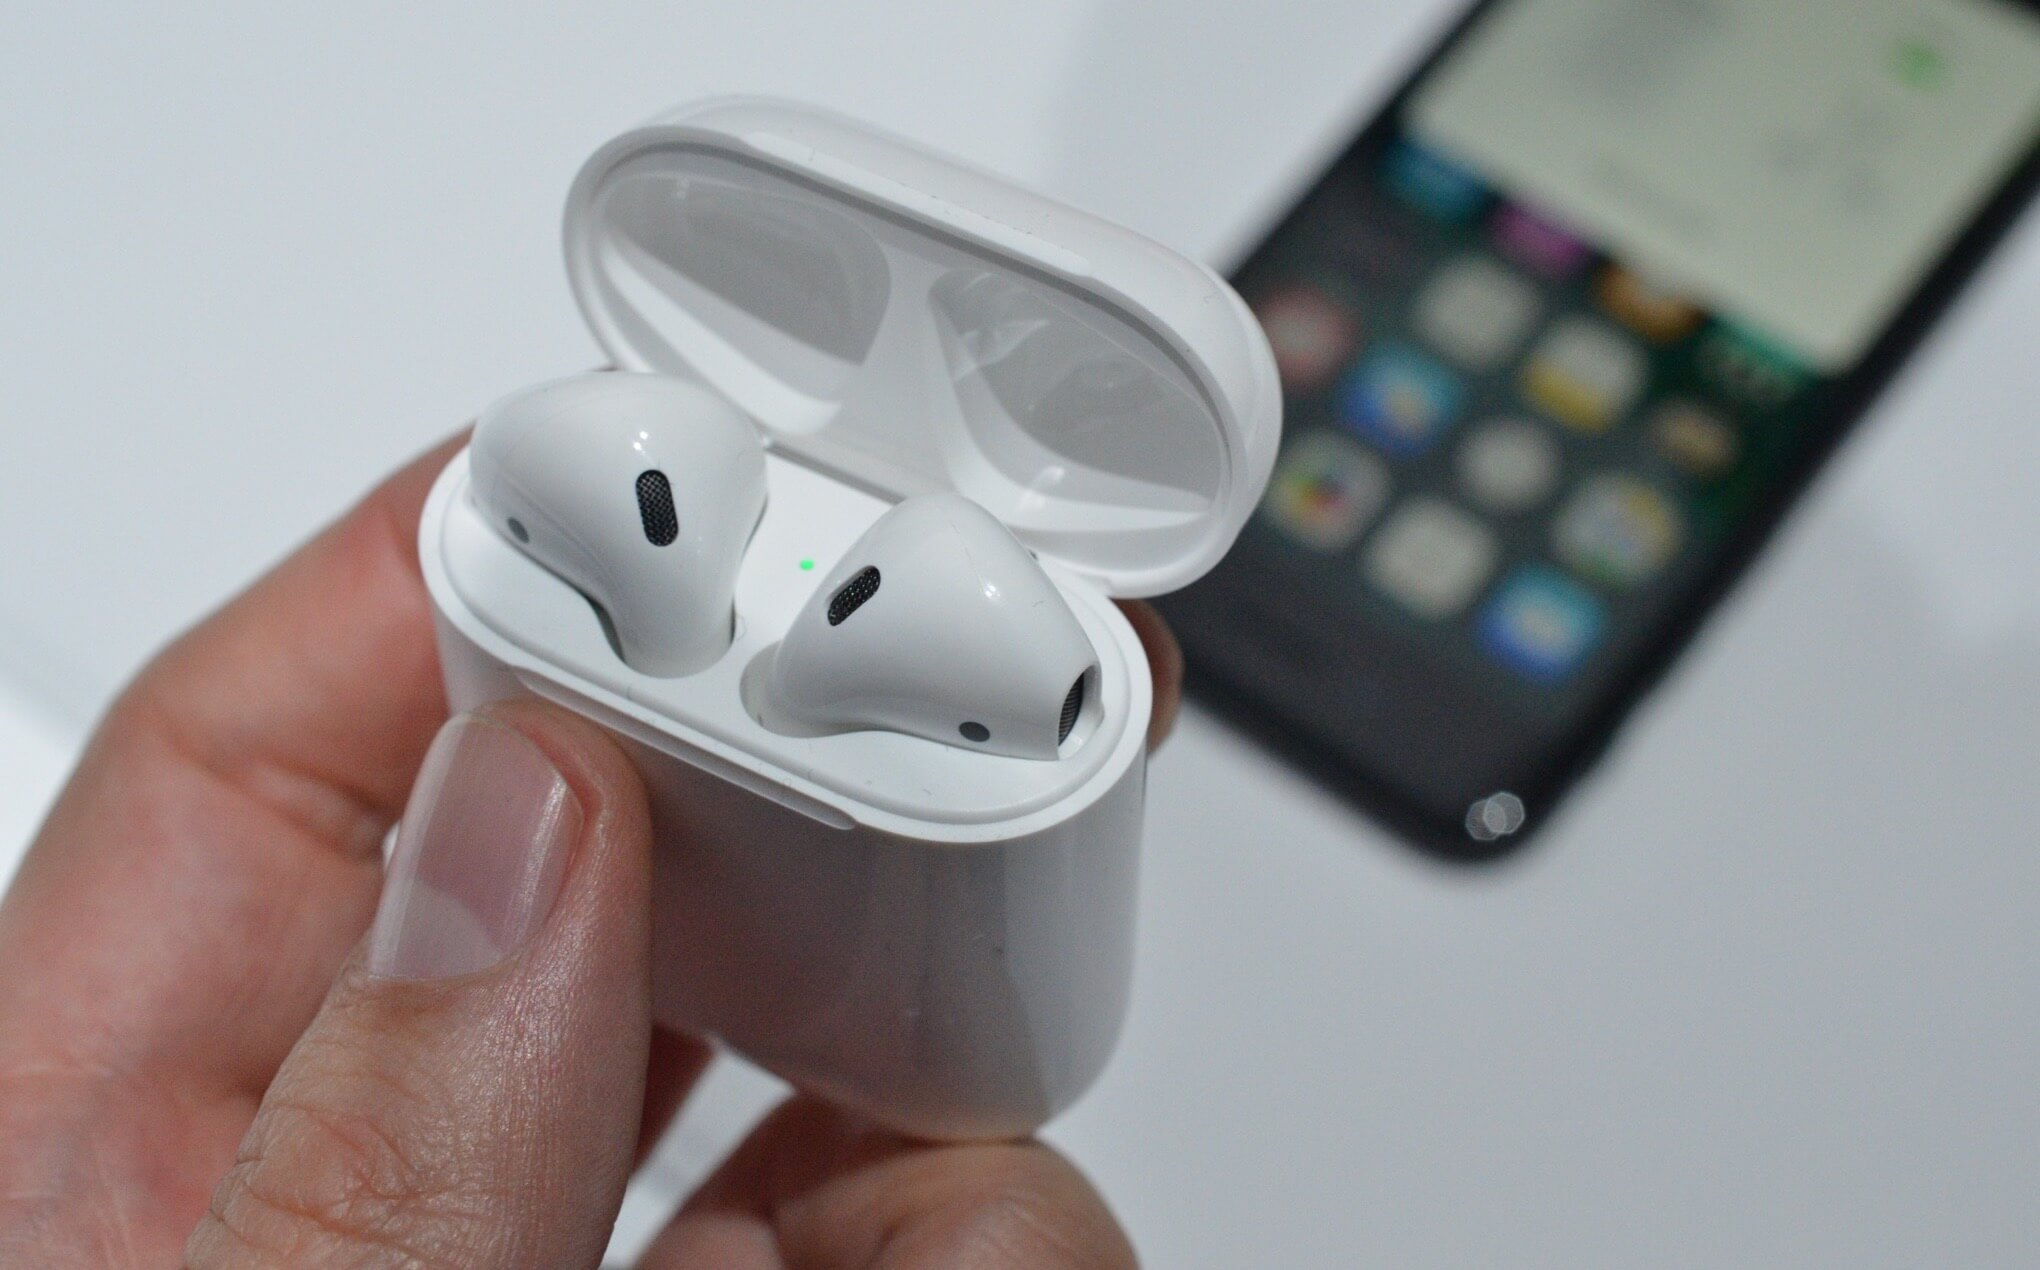 Apple news, 187 release: AirPods on sale and cheaper iPhone in Russia